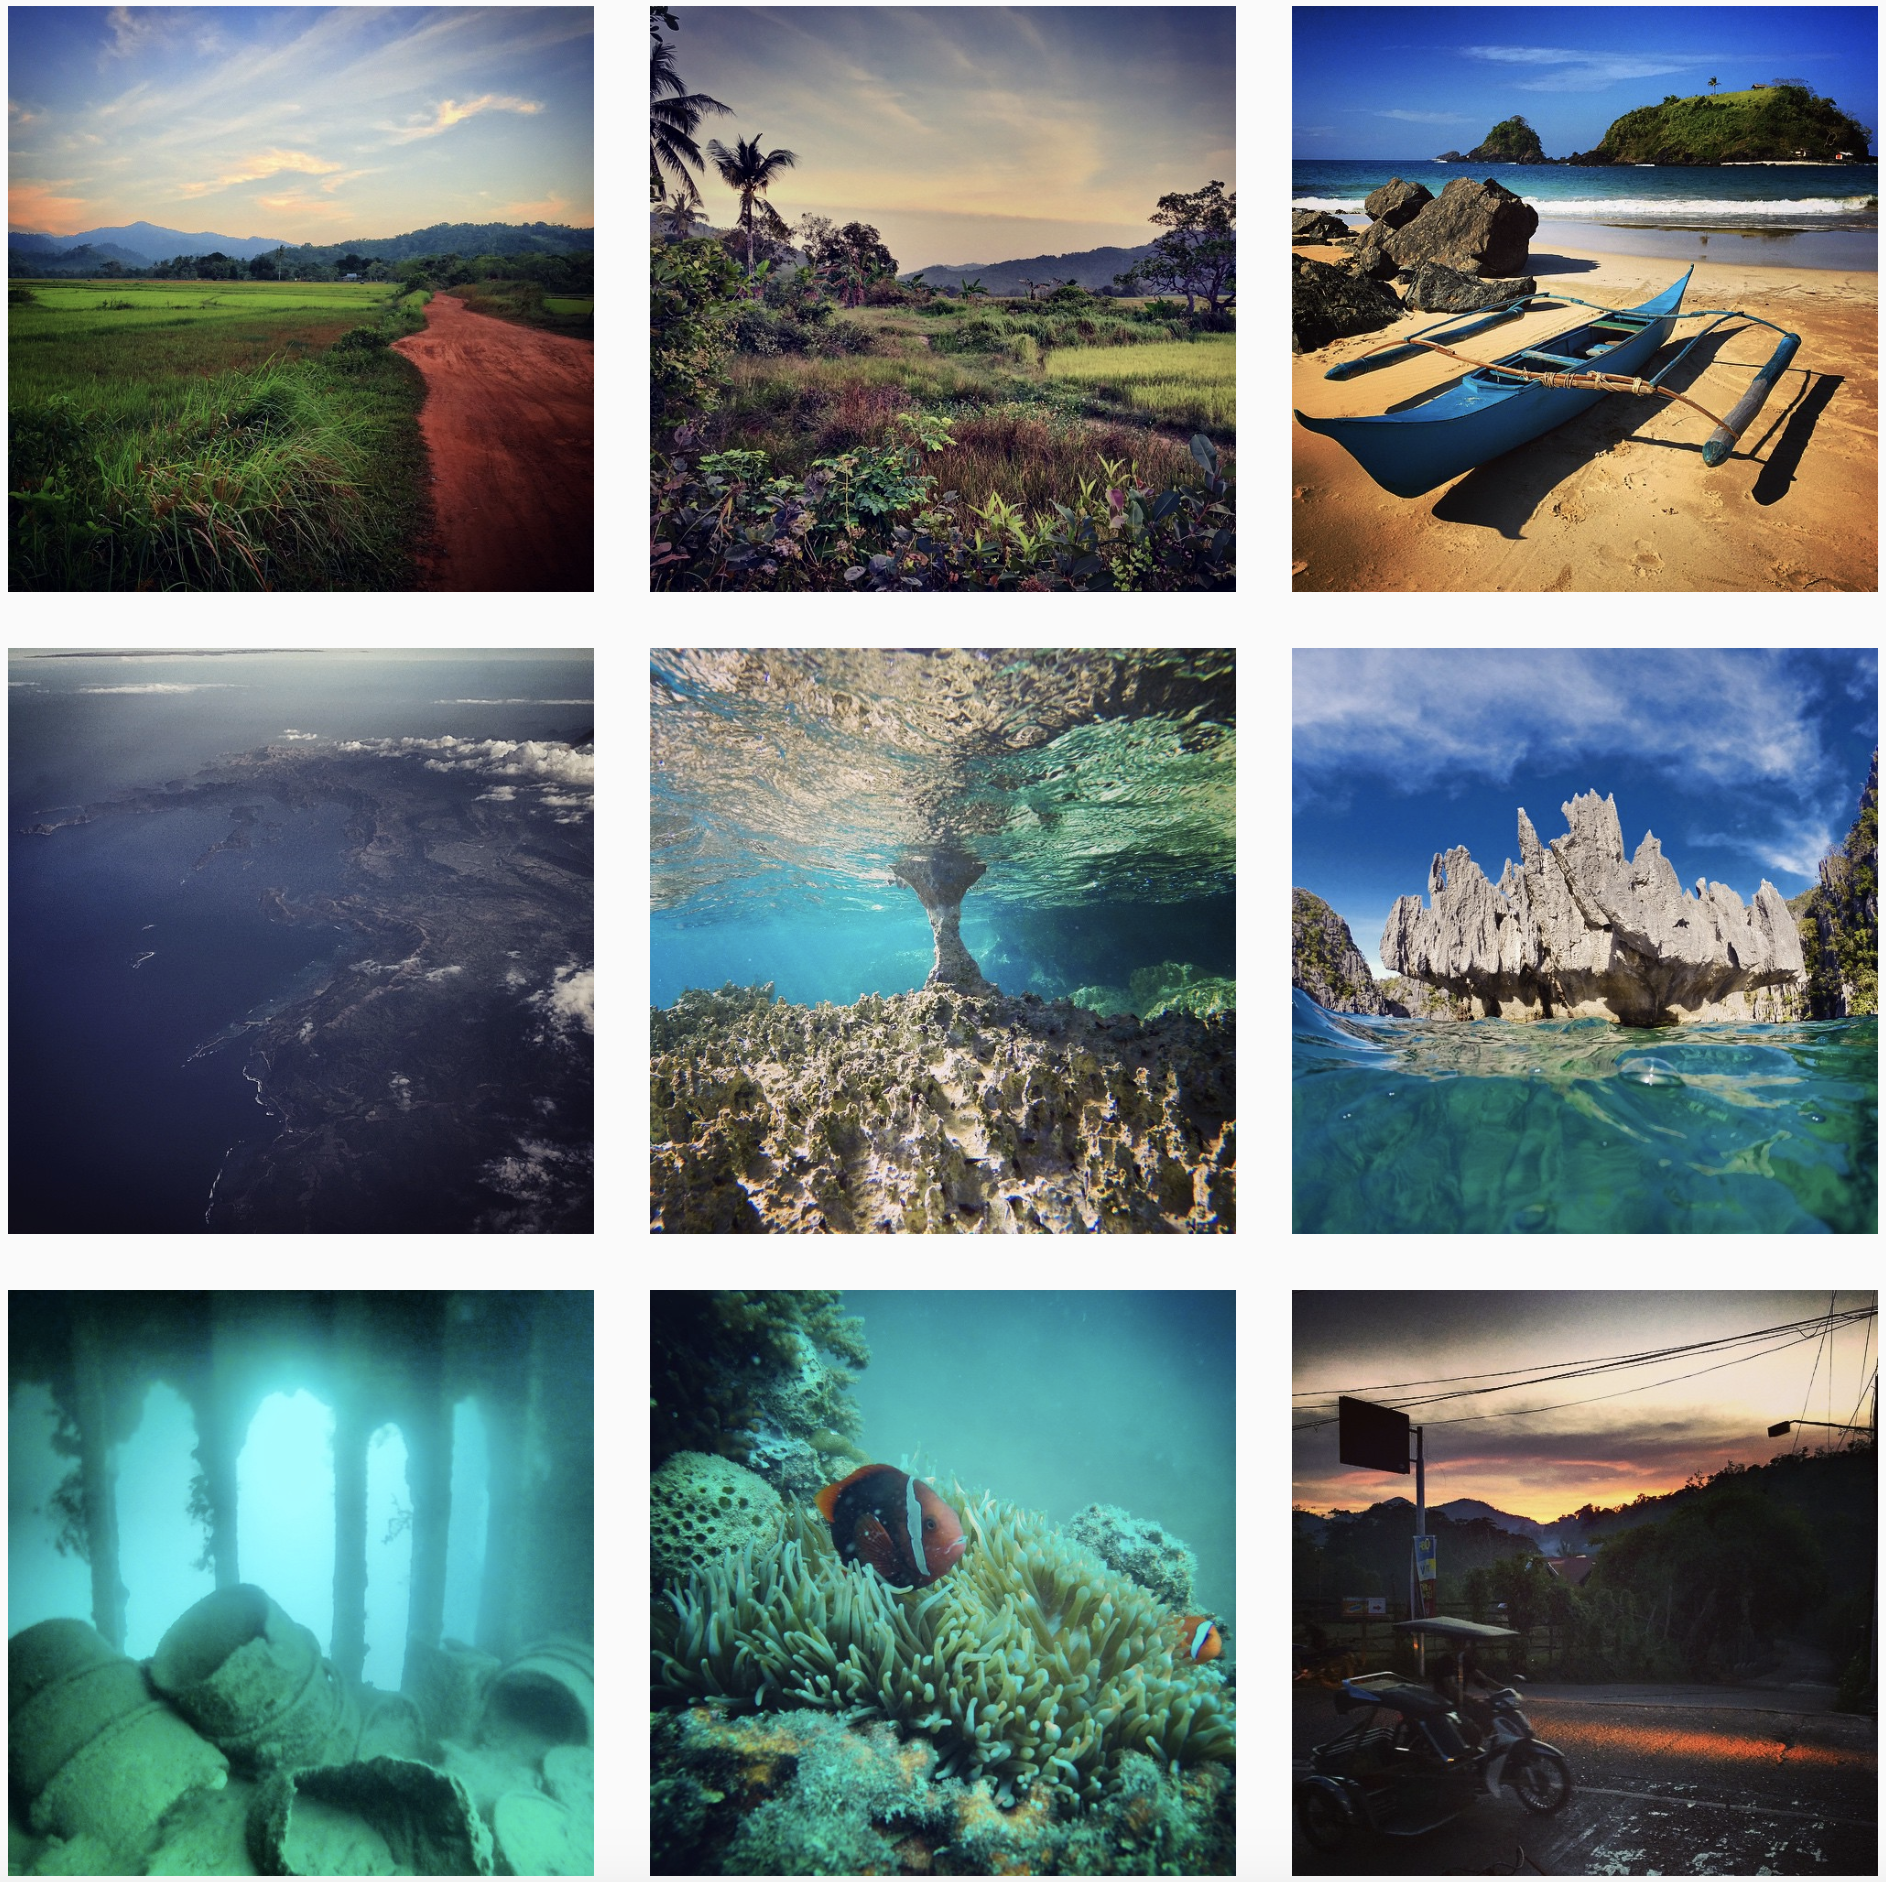 Follow Sarah's amazing photos from around the world on instagram